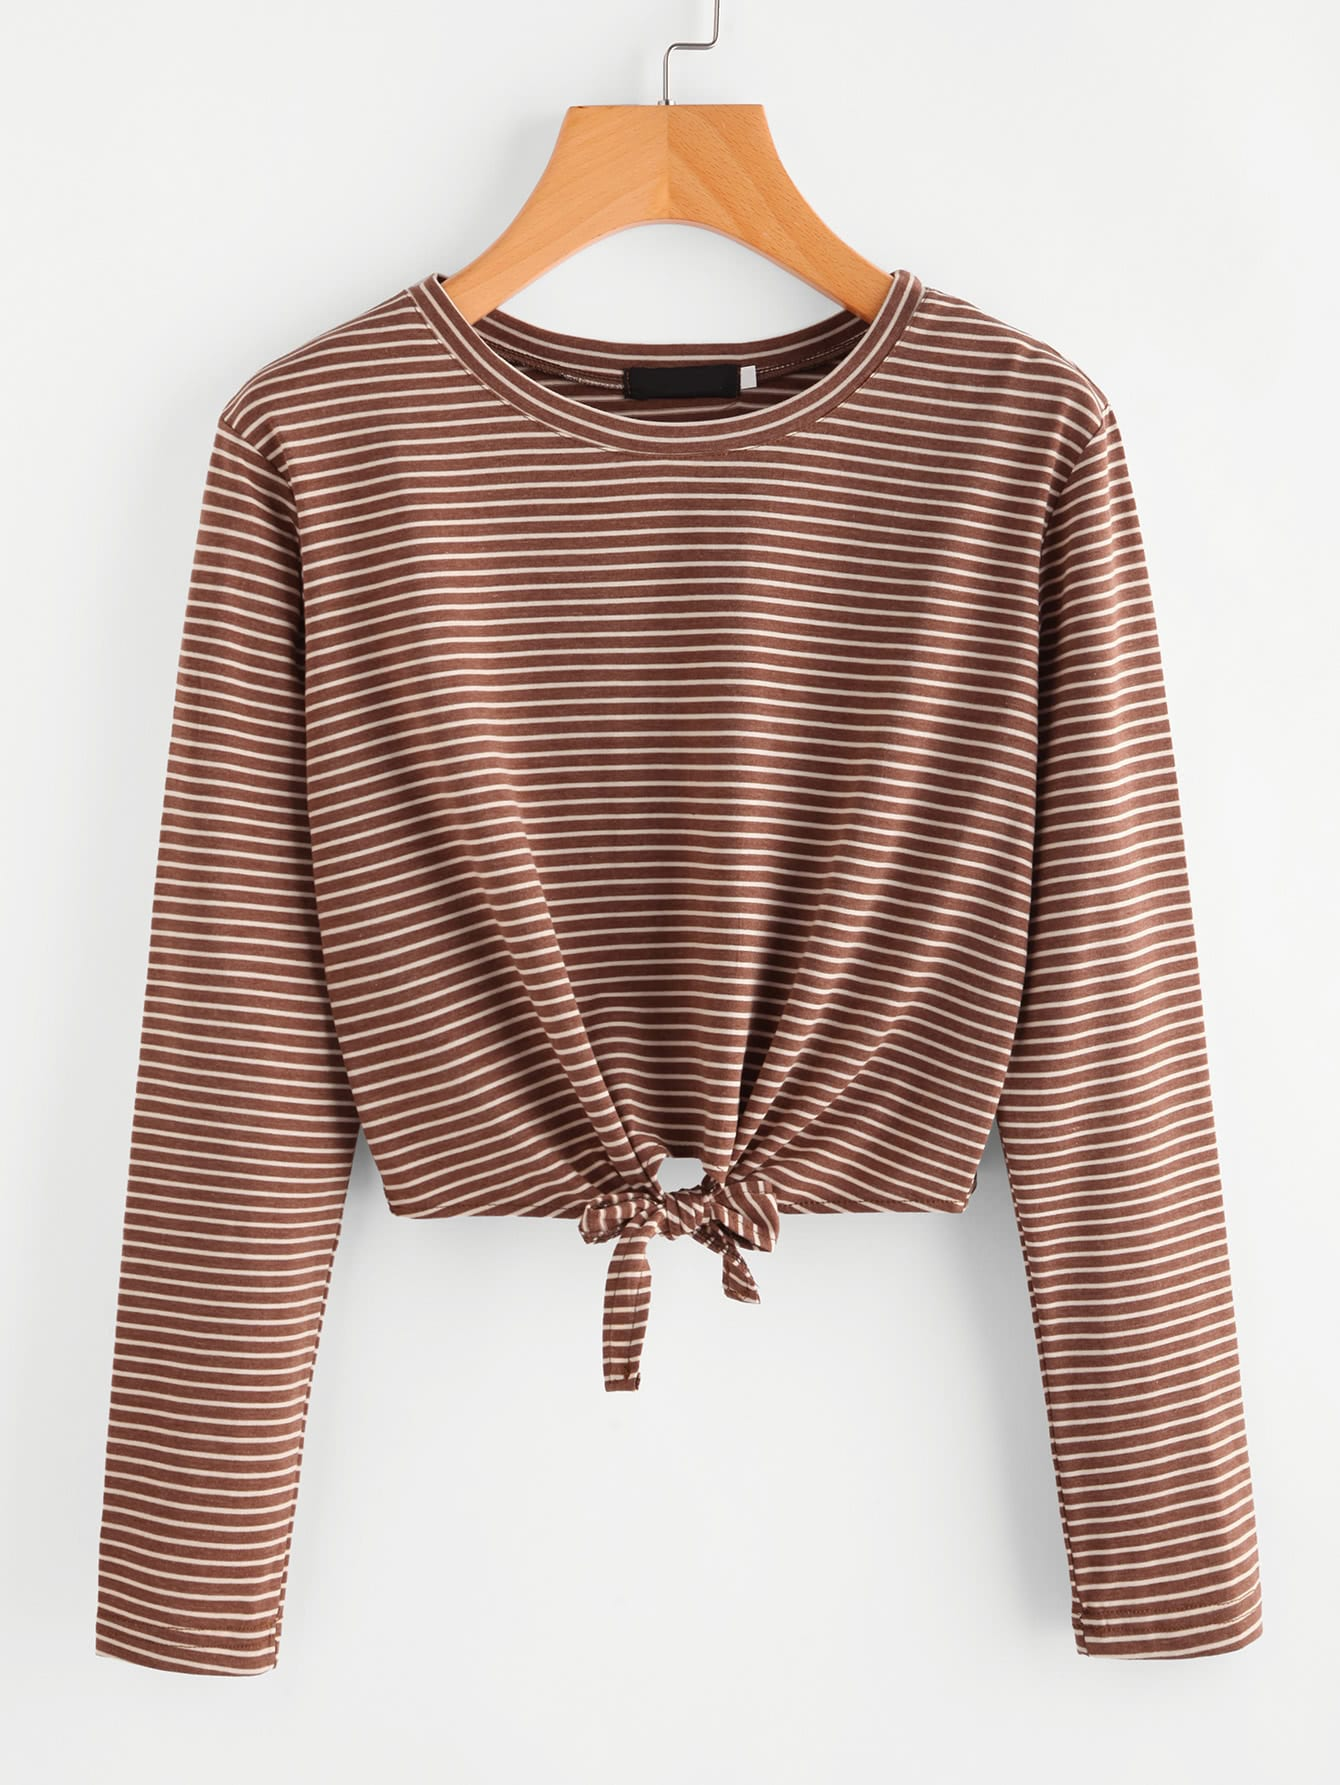 Striped Knot Front Tee knot front tee